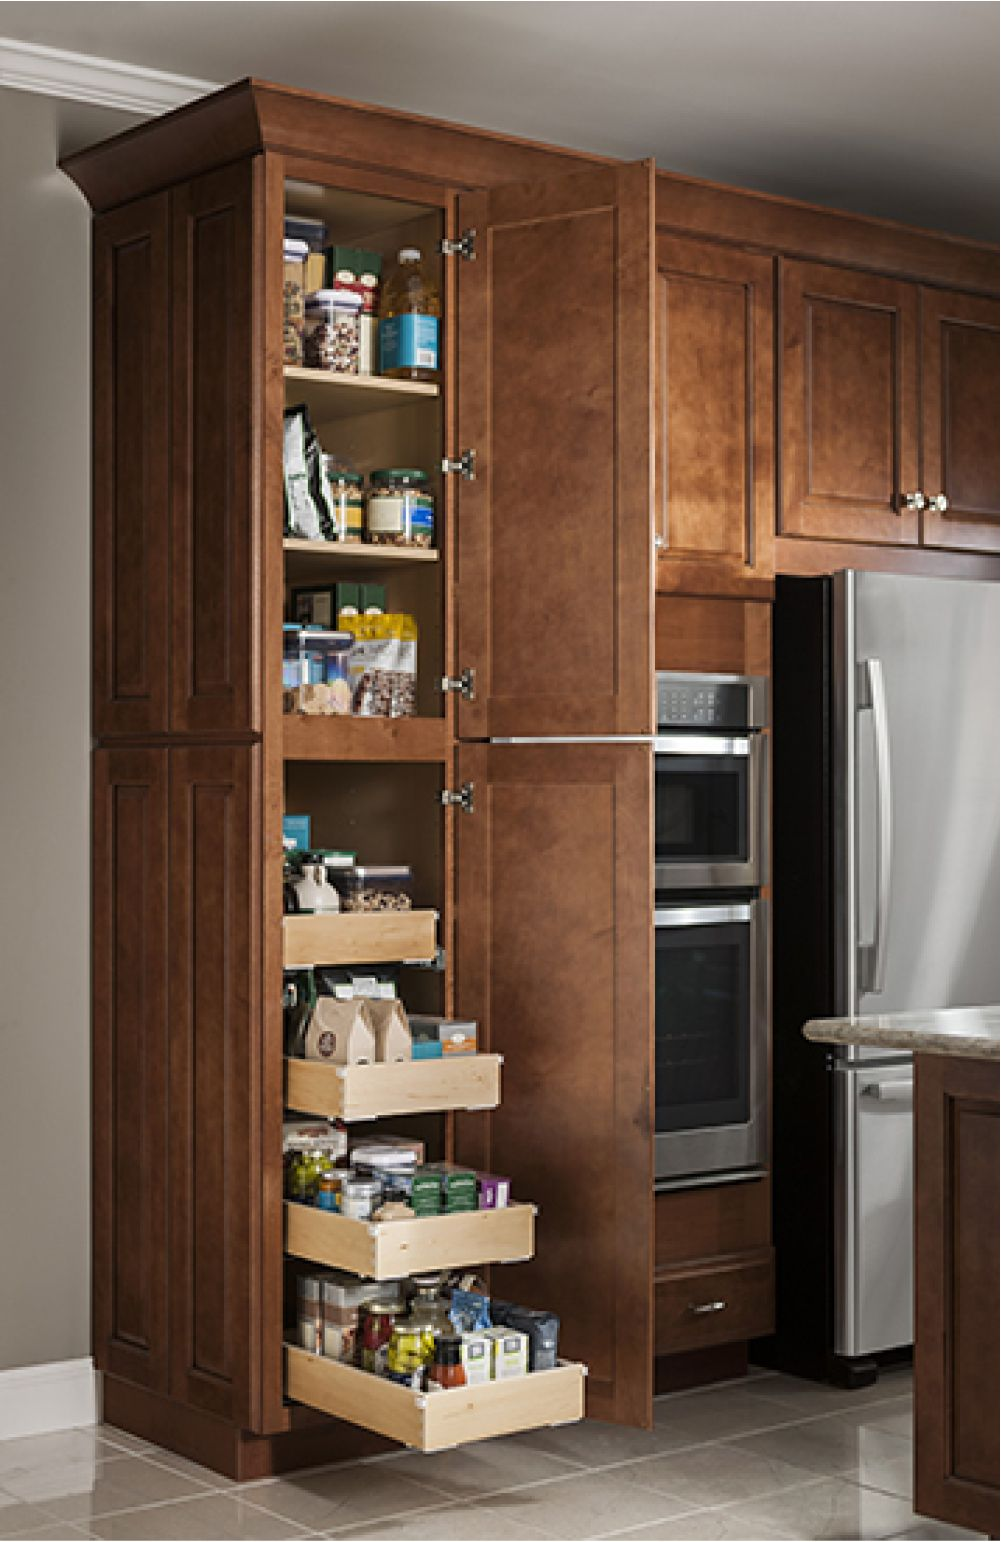 Utility Cabinet With Roll Out Trays Design By Allen Roth Kitchen Cabinets Tall Kitchen Cabinets Kitchen Plans